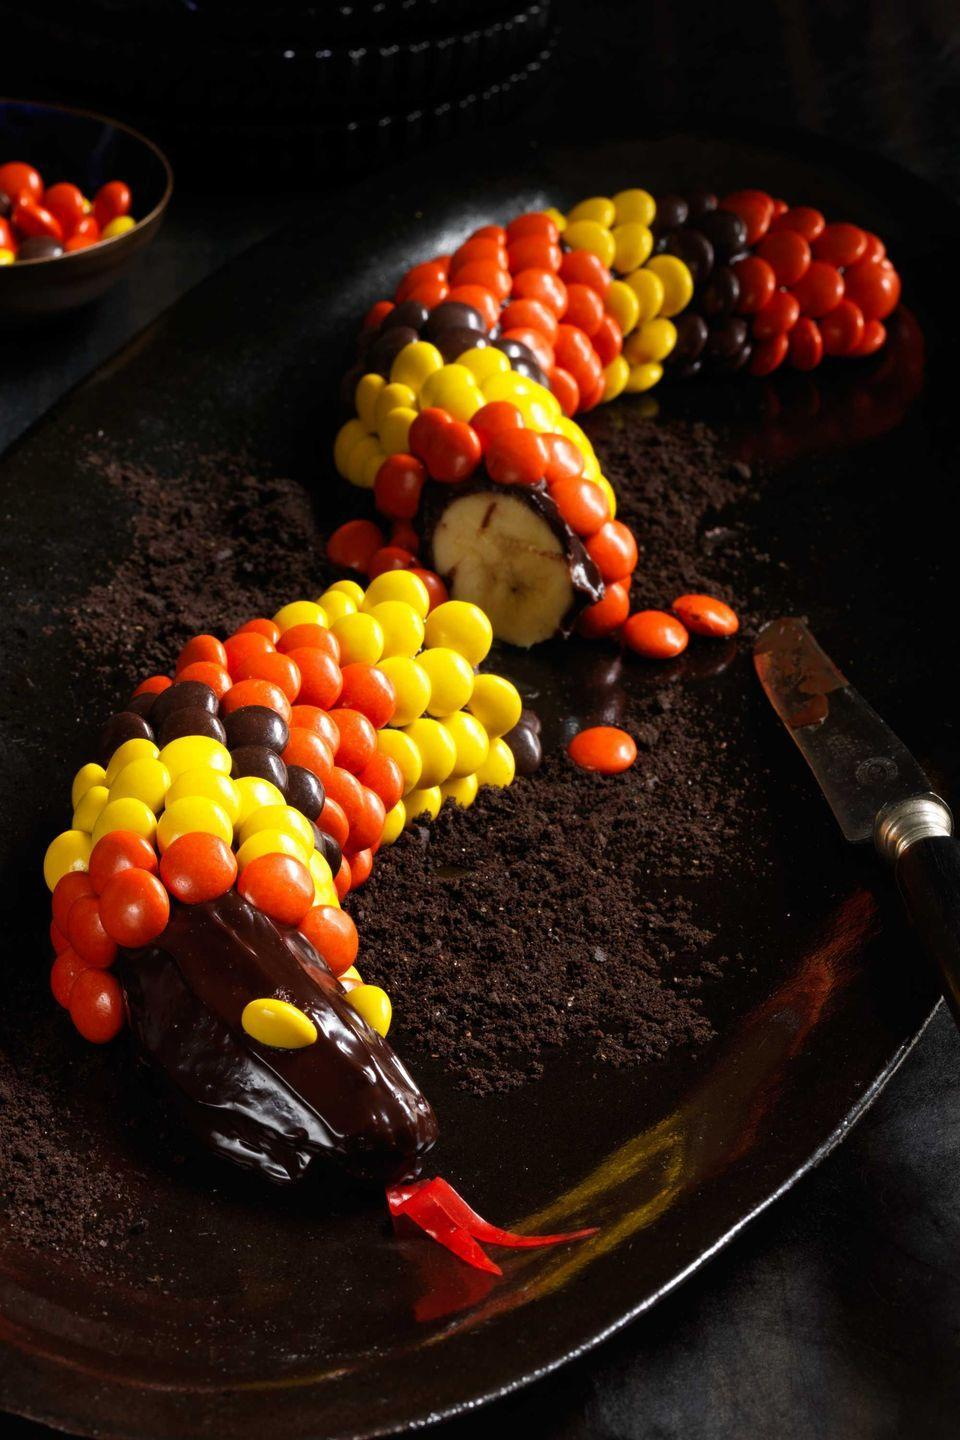 """<p>Peanut butter, chocolate, and bananas — what could be better? Rolling all those flavors together into a slithery sweet snake for Halloween, that's what.</p><p><strong><em><a href=""""https://www.womansday.com/food-recipes/food-drinks/recipes/a11984/peanut-chocolate-banana-snakes-recipe-123645/"""" rel=""""nofollow noopener"""" target=""""_blank"""" data-ylk=""""slk:Get the Peanut and Chocolate Banana Snakes recipe."""" class=""""link rapid-noclick-resp"""">Get the Peanut and Chocolate Banana Snakes recipe. </a></em></strong></p>"""